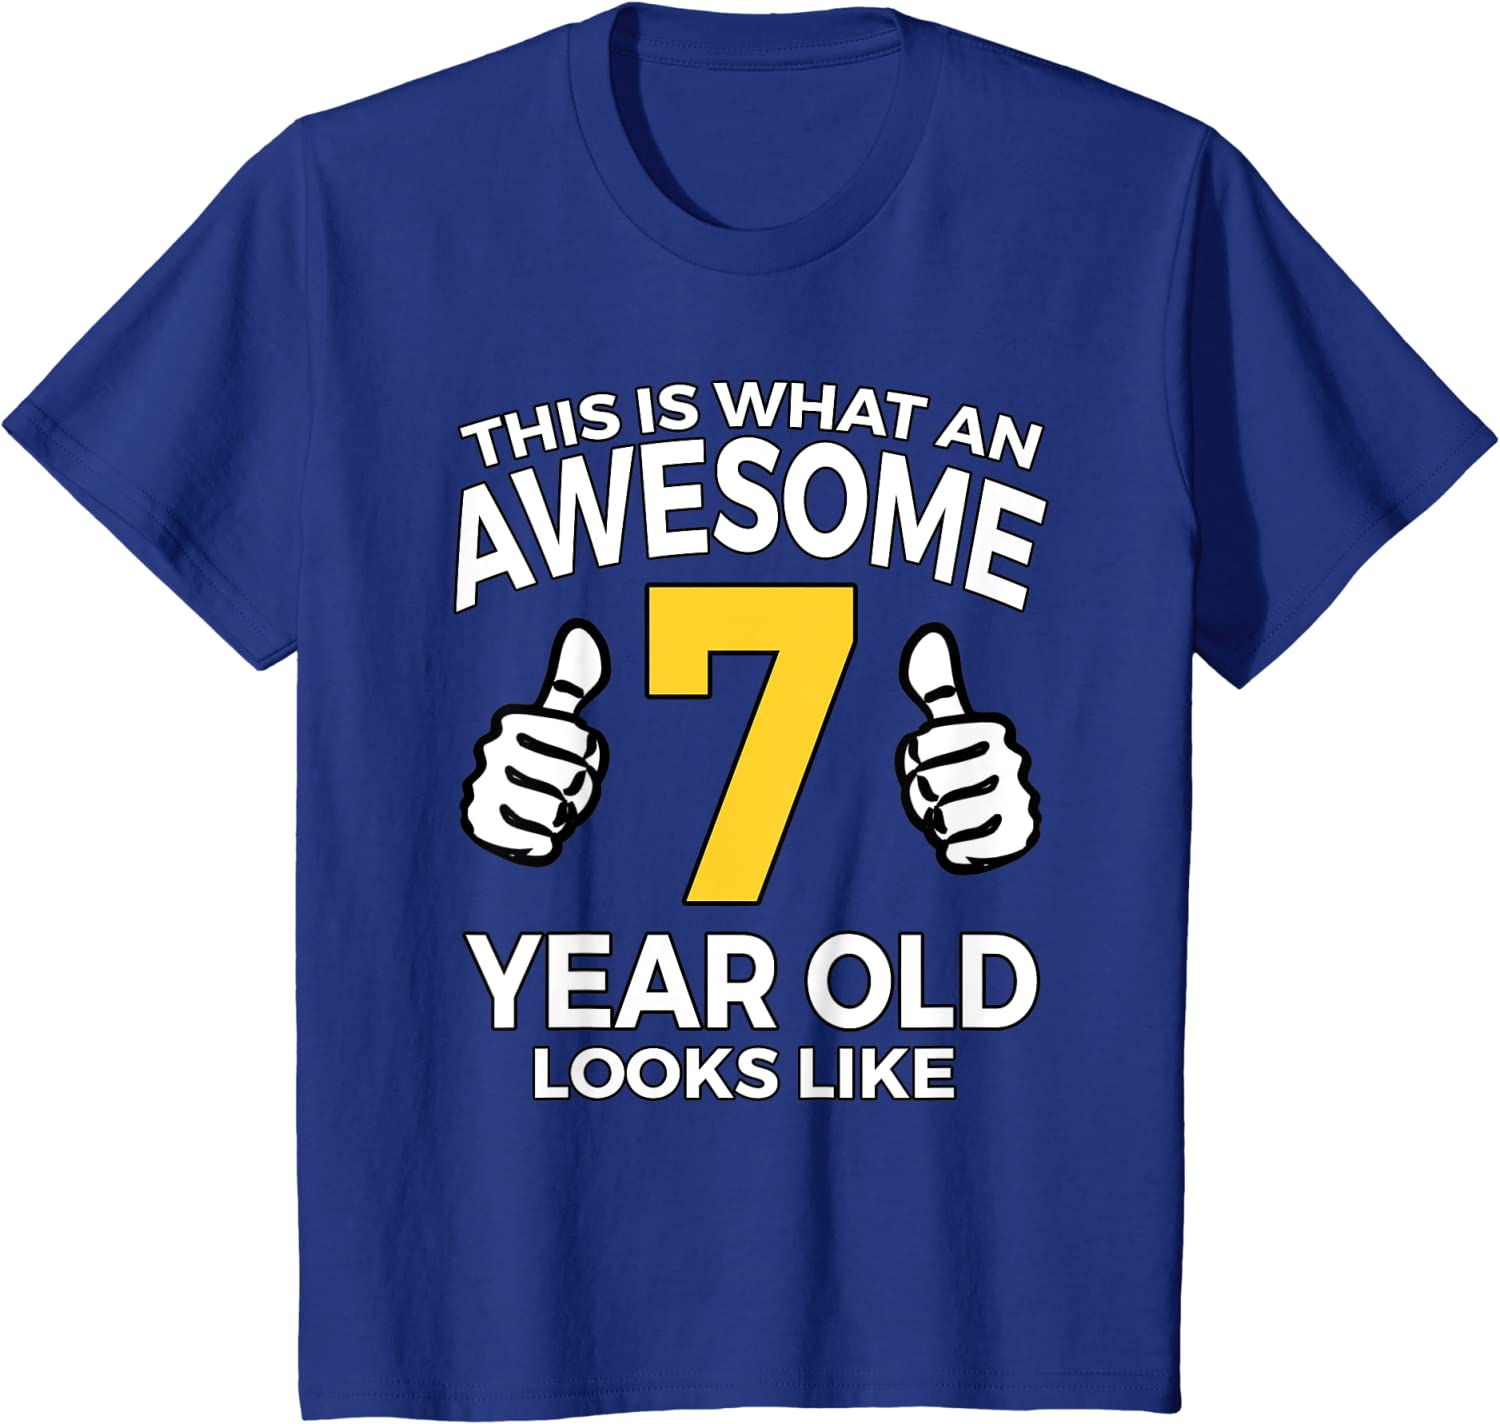 Version 7.0 7th Birthday Gifts Present ideas Gaming T-Shirt For 7 Year Old Boys